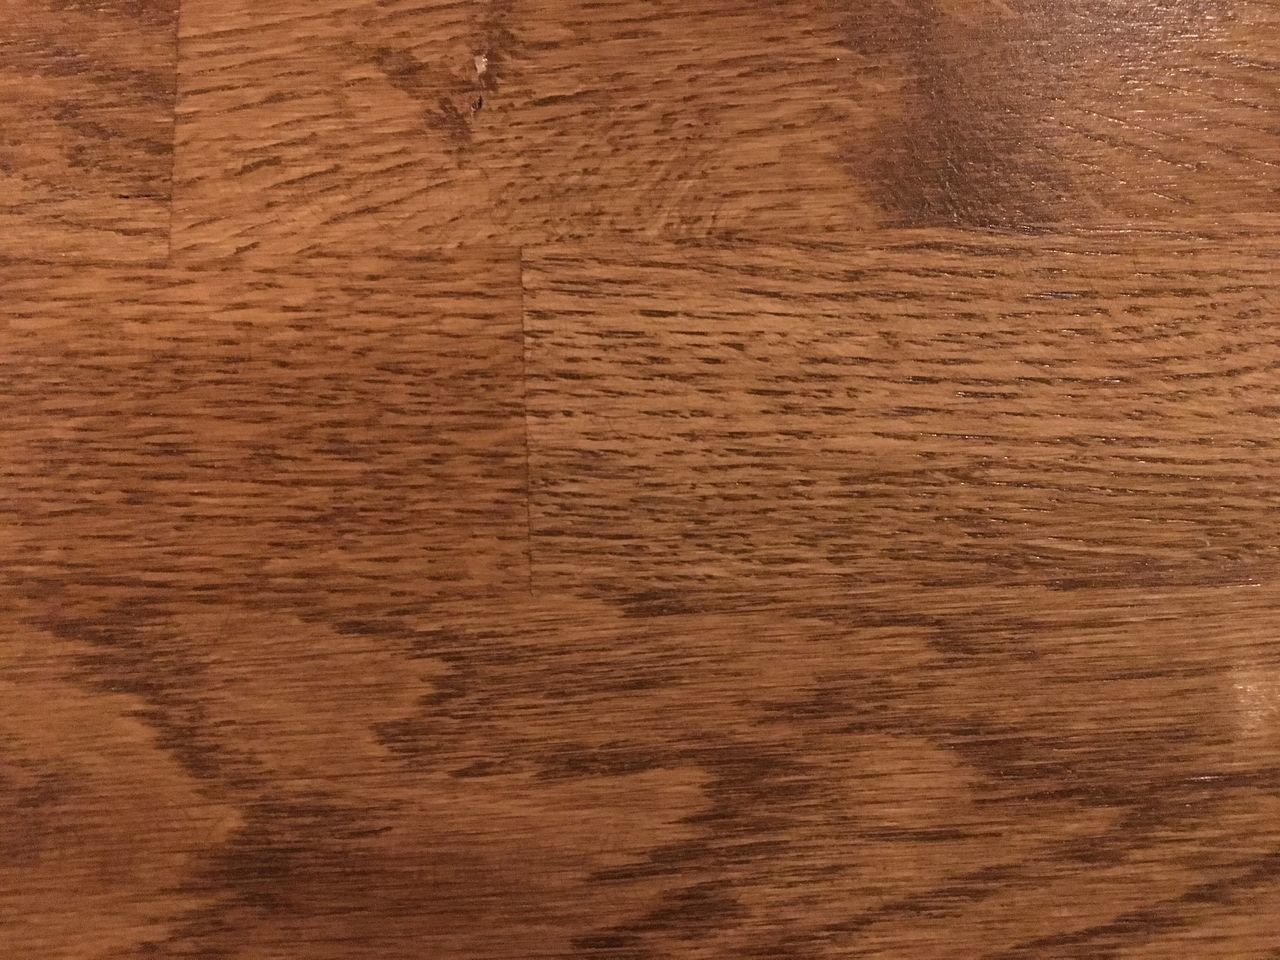 Wood - Material Wood Grain Textured  Backgrounds Timber Nature Plank Hardwood Flooring Brown Pattern Material Hardwood Floor Parquet Floor Macro Wood Laminate Flooring Wood Paneling Full Frame Blank Close-up